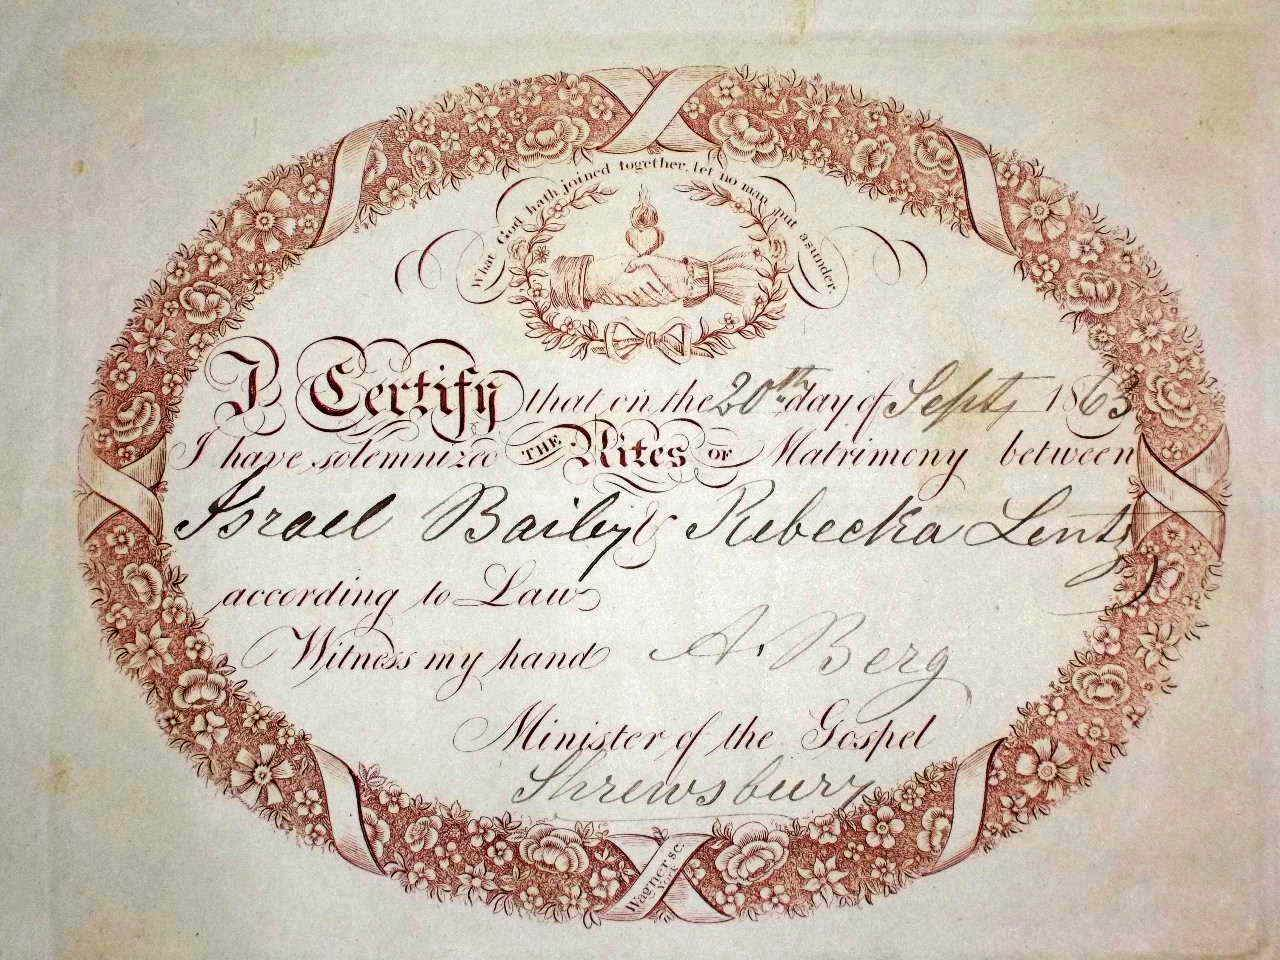 21 CHRIST LUTHERAN EARLY MARRIAGE CERTIFICATE